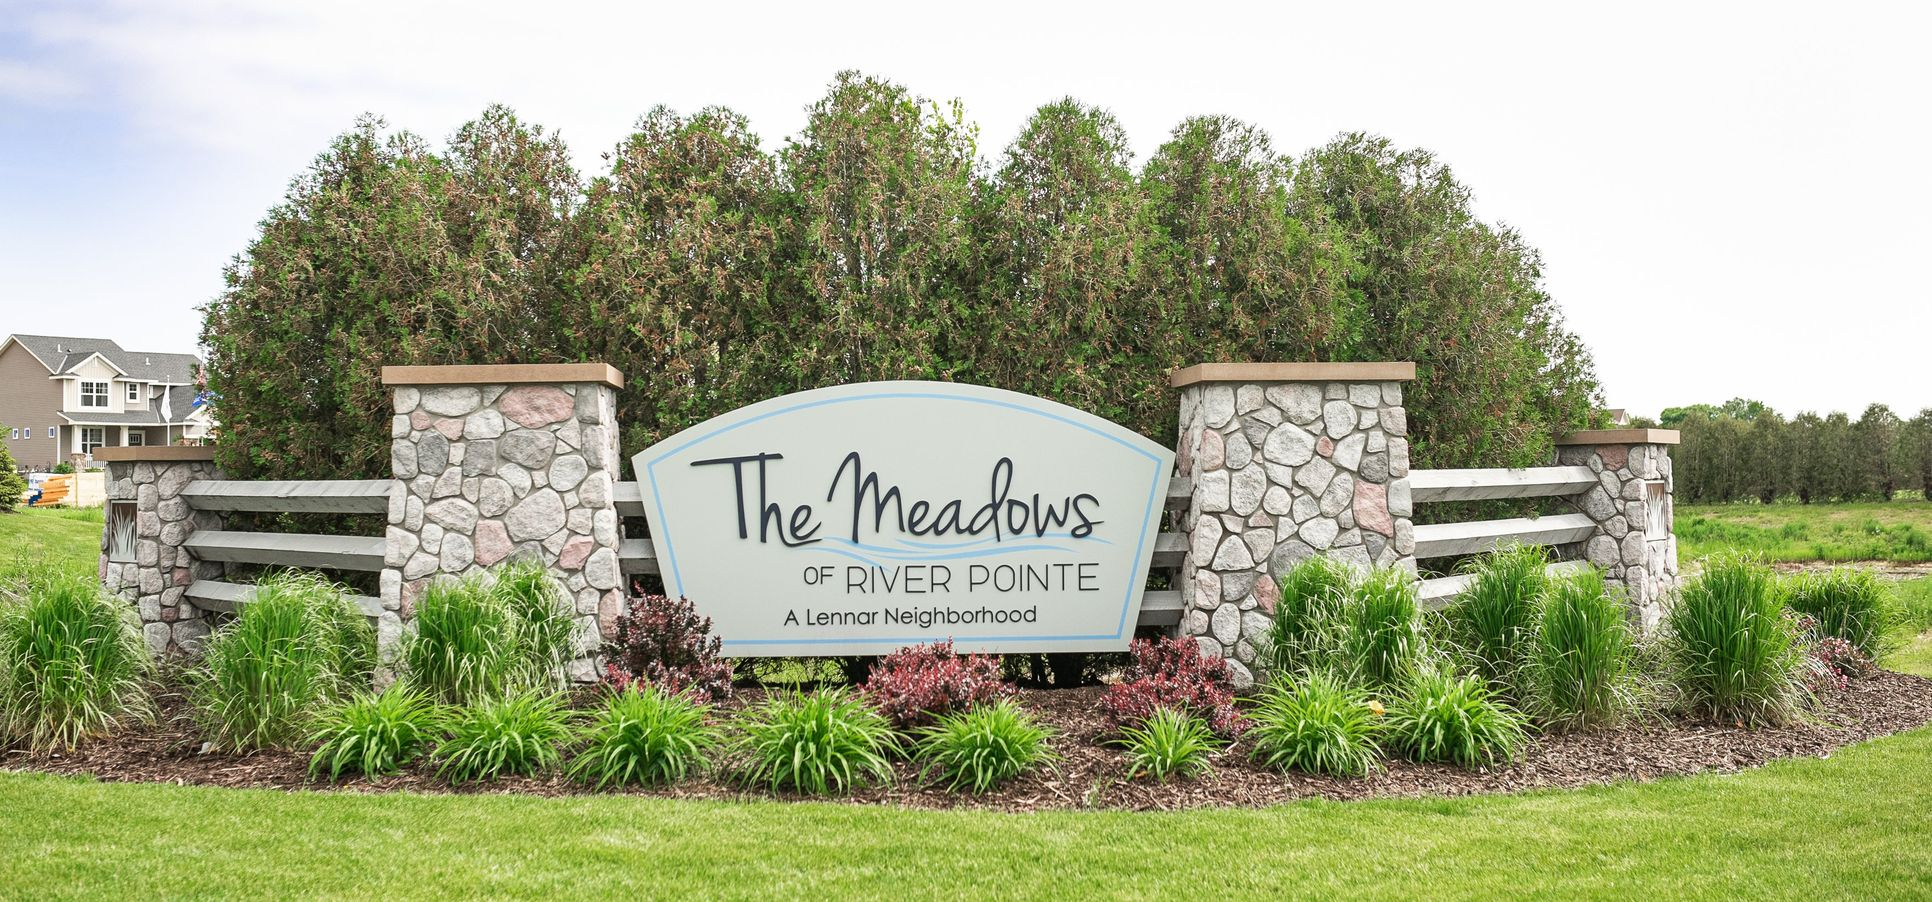 The Meadows of River Pointe